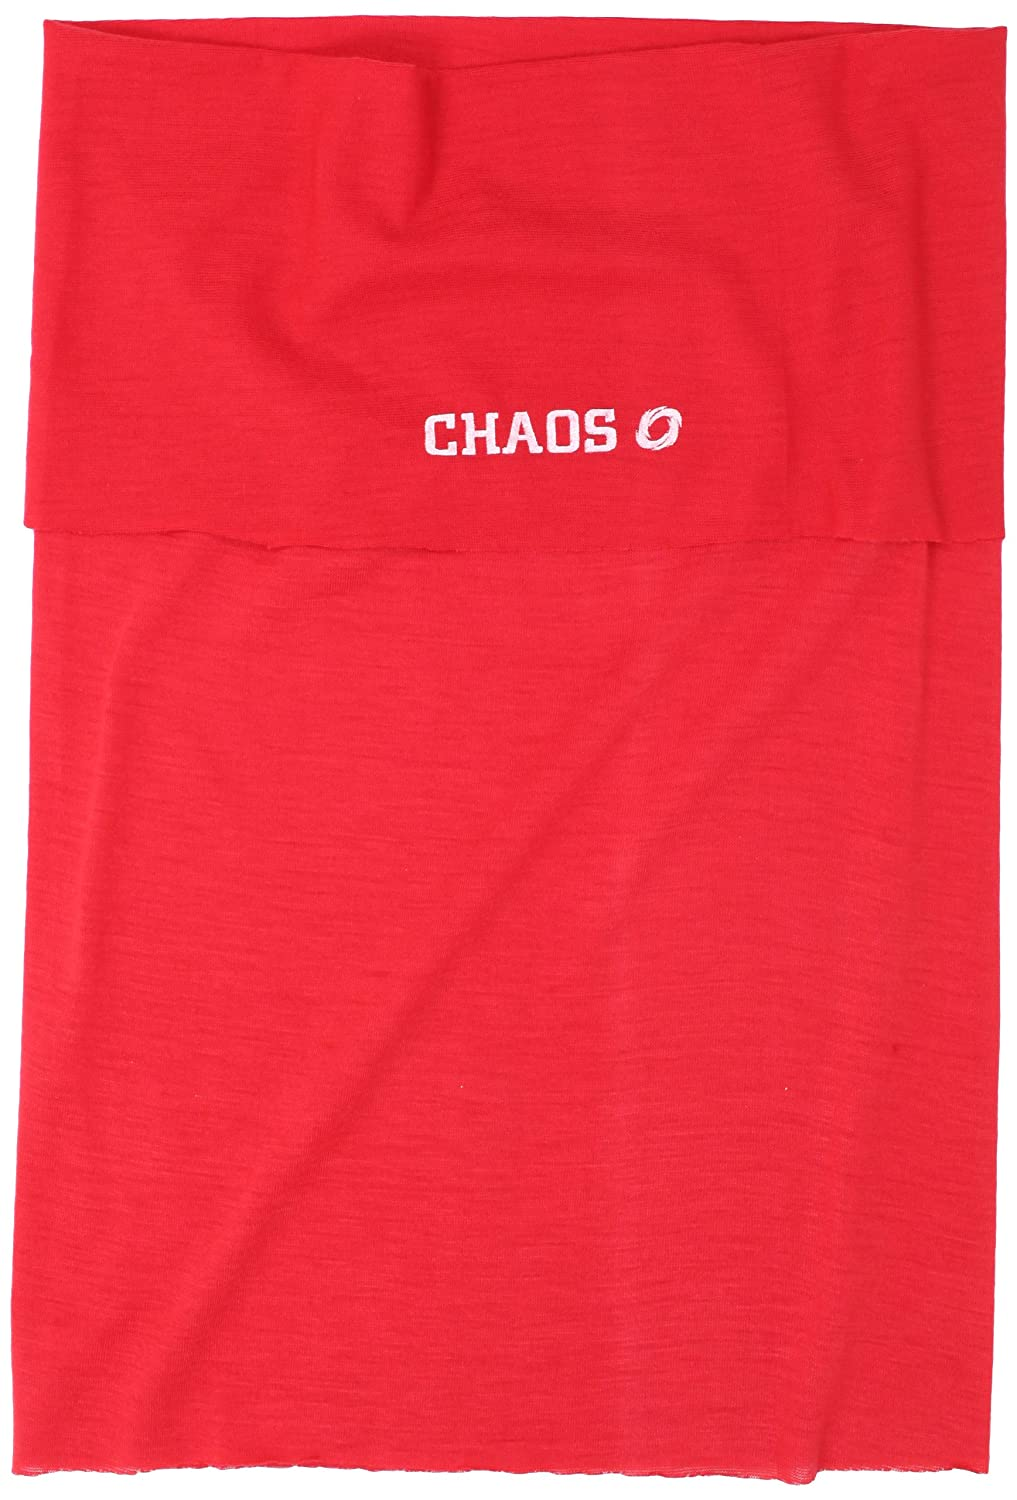 69fb270c7 Chaos Men's Multi Tubular Multi Purpose Headwear (Red, One Size ...